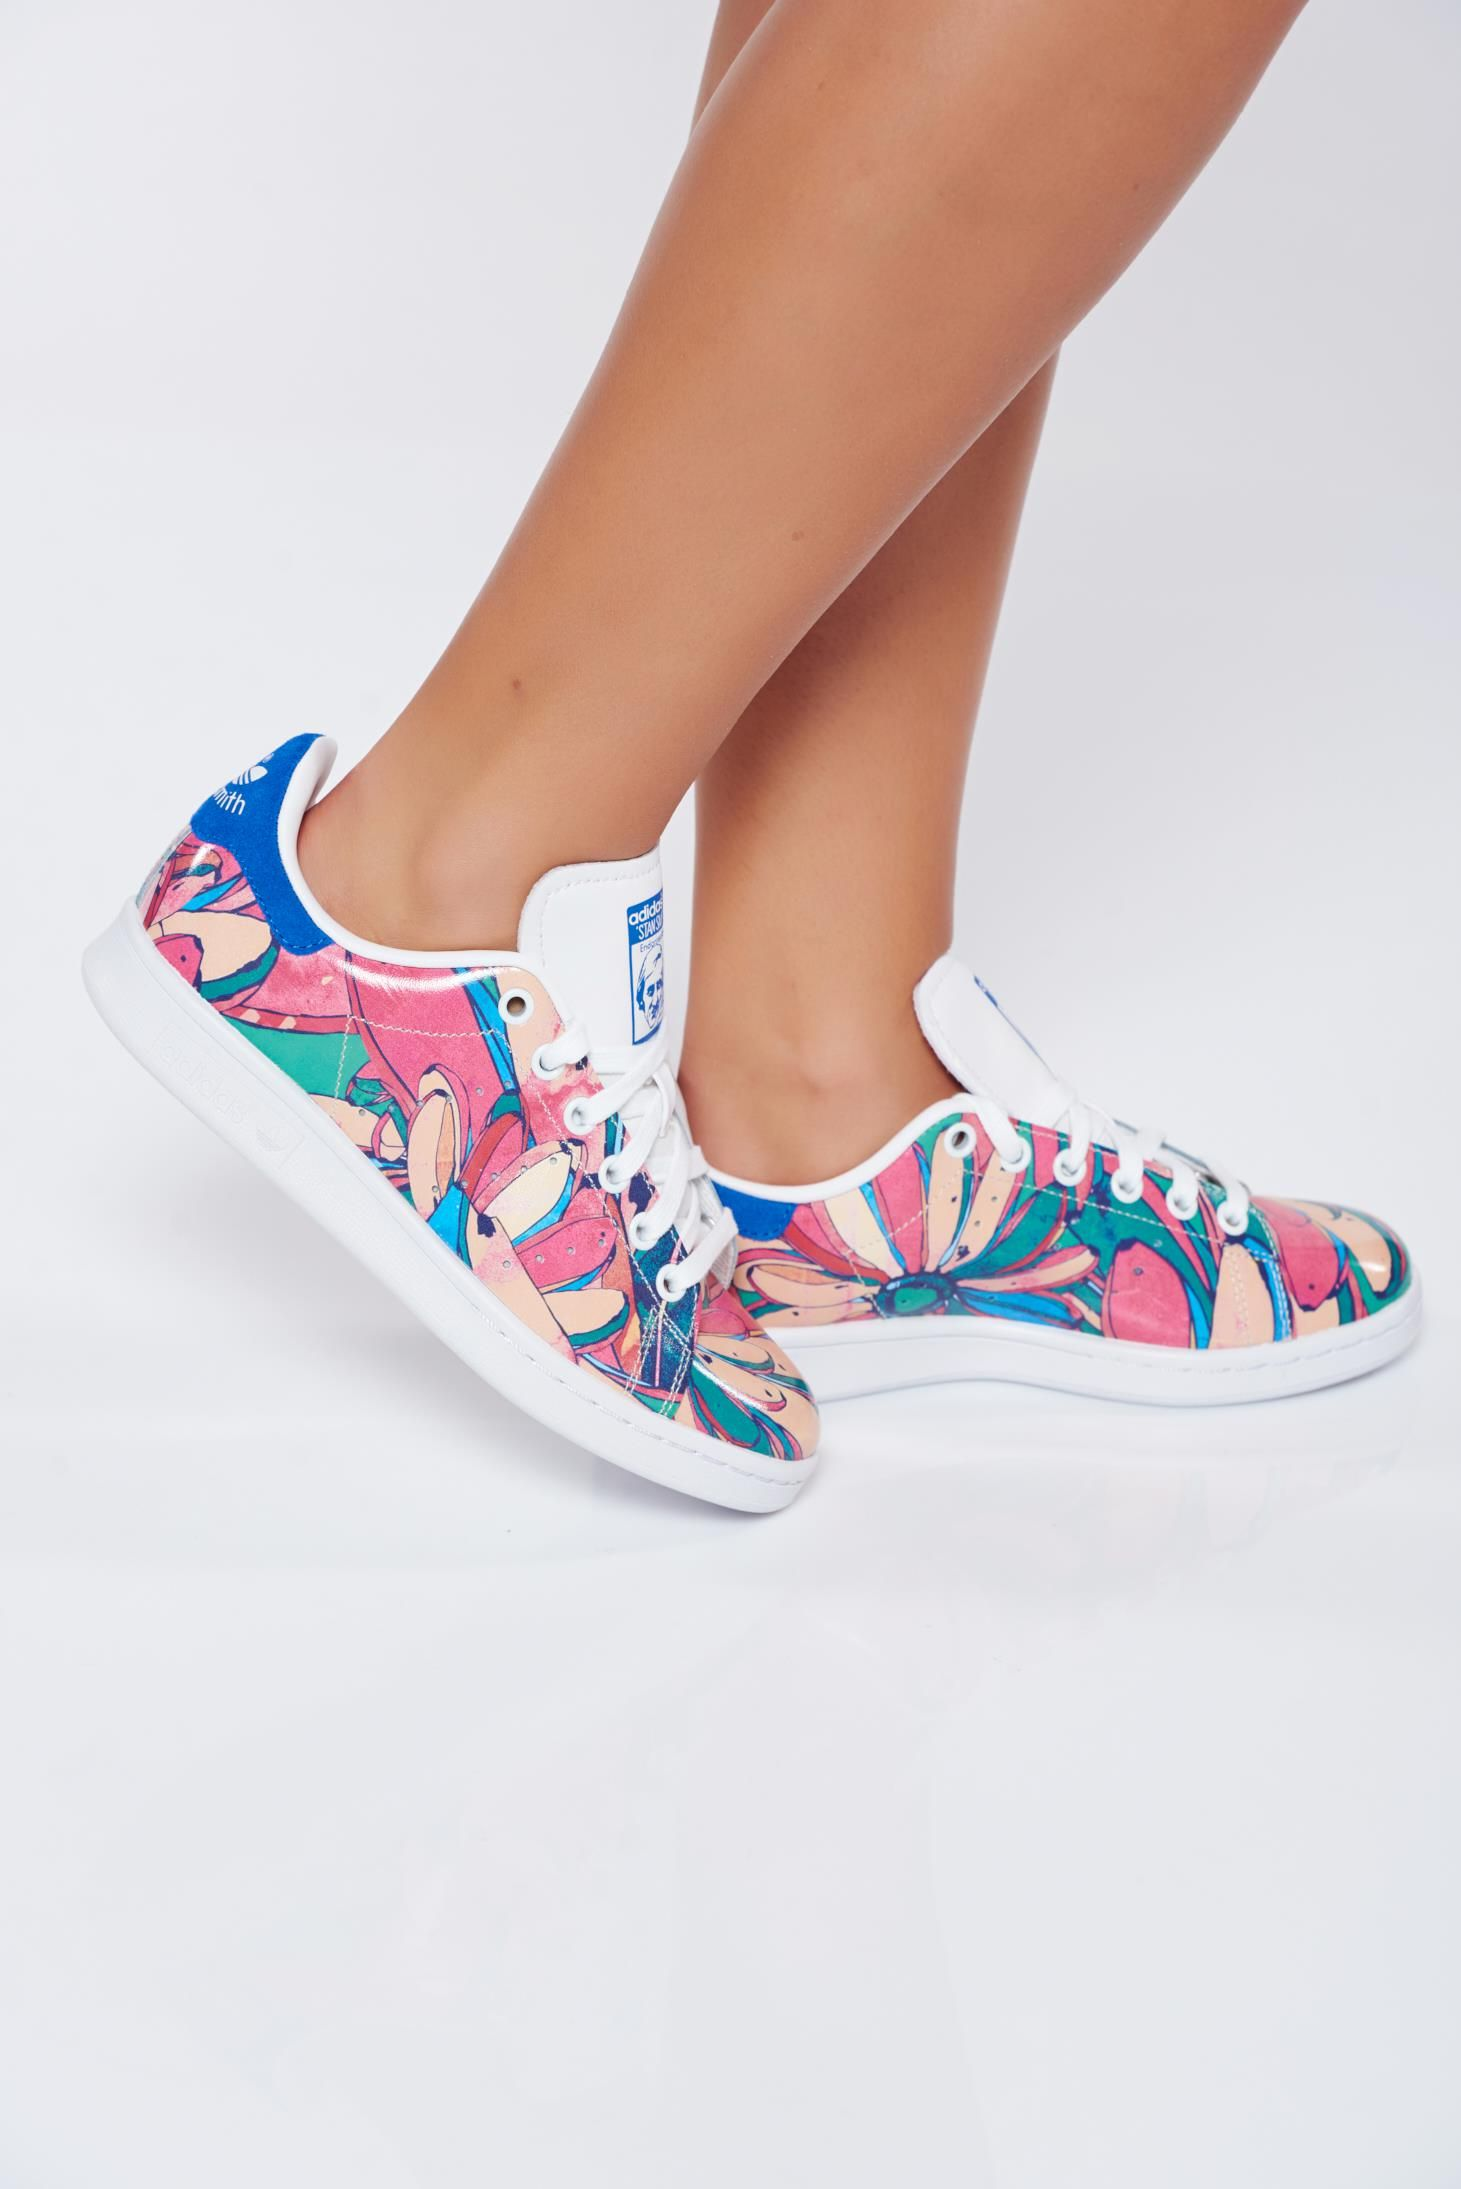 size 40 b8b28 bc714 ... low cost rosa casual natural leather sneakers adidas by stan smith with  floral print with lace